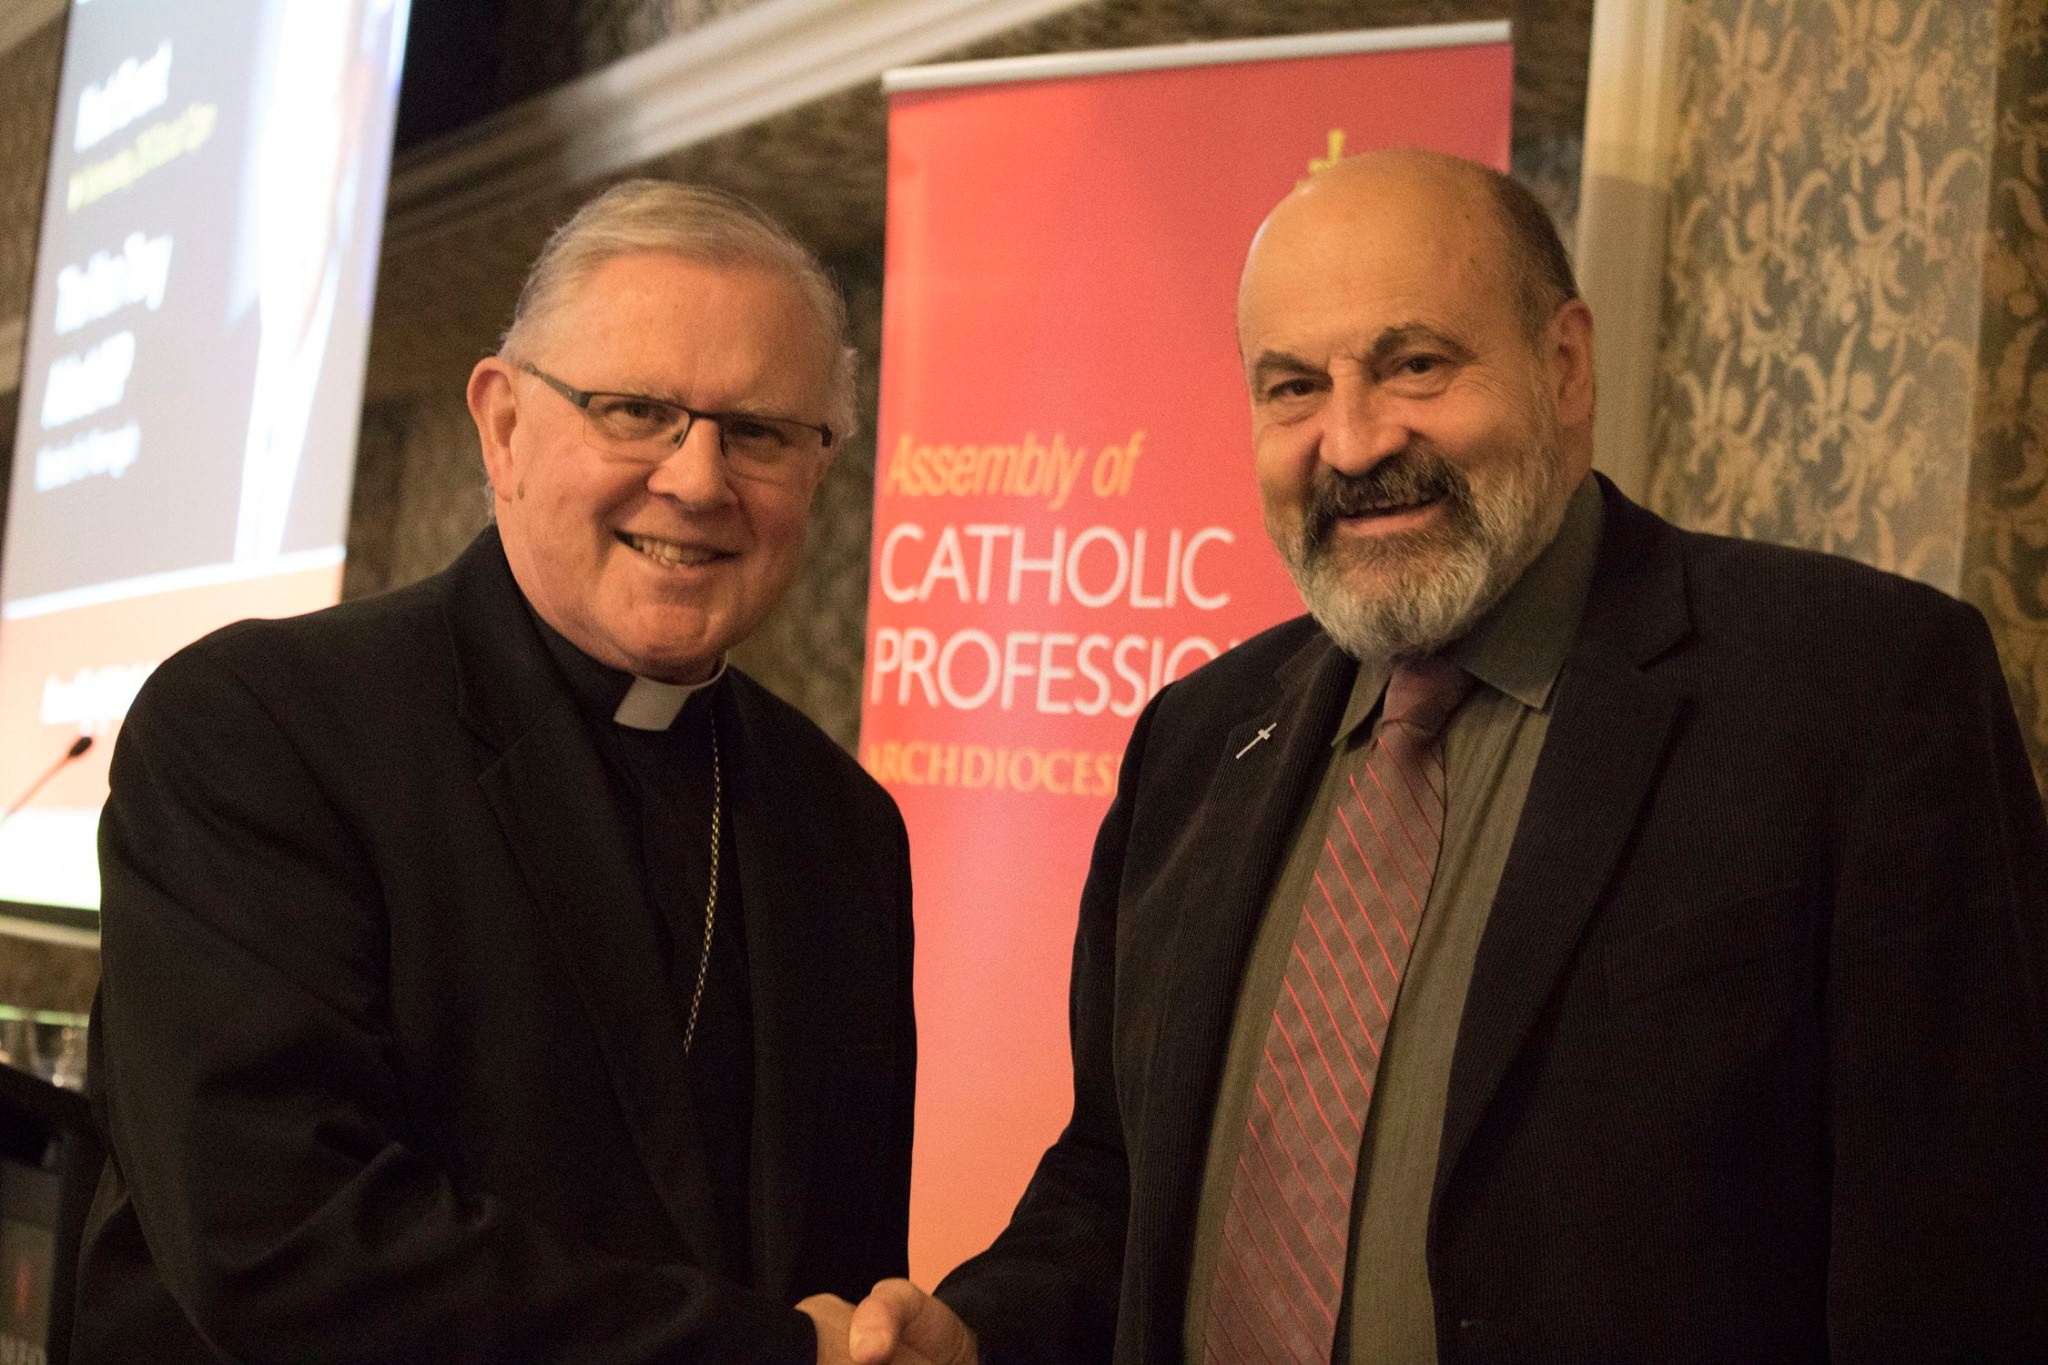 Archbishop Mark Coleridge at the Assembly of Catholic Professionals with Msgr Tomas Halik